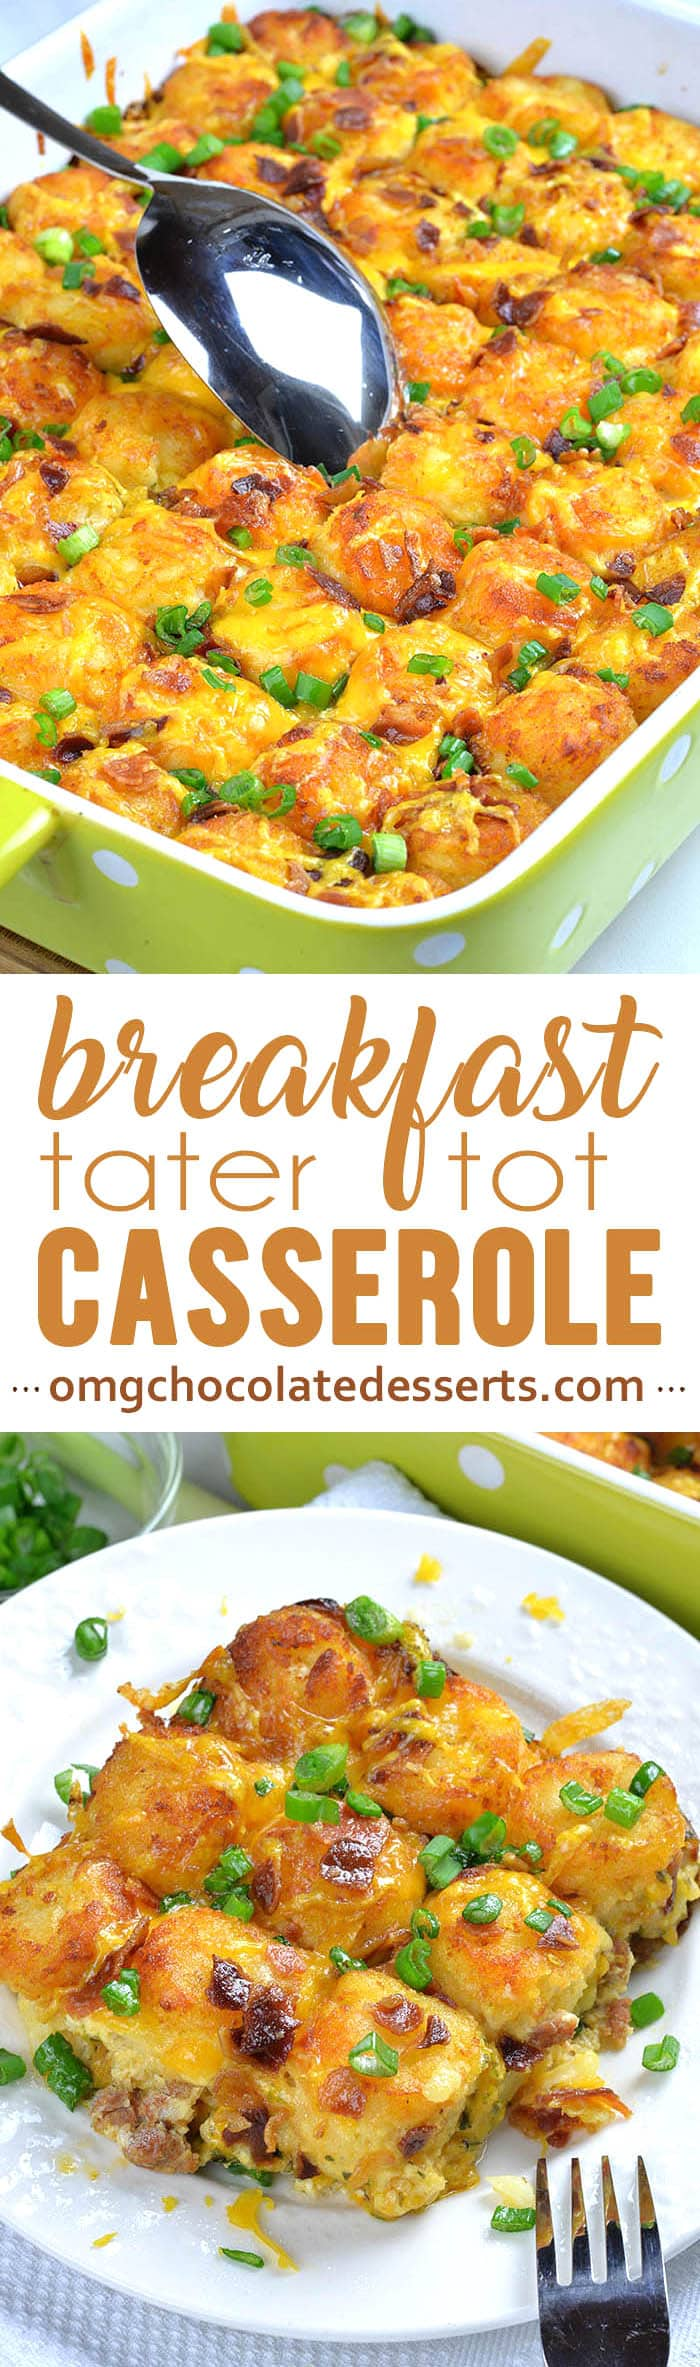 Tater Tot Breakfast Casserole recipe with sausage, bacon and eggs is easy, make ahead breakfast, brunch or weeknight dinner meal for whole family.